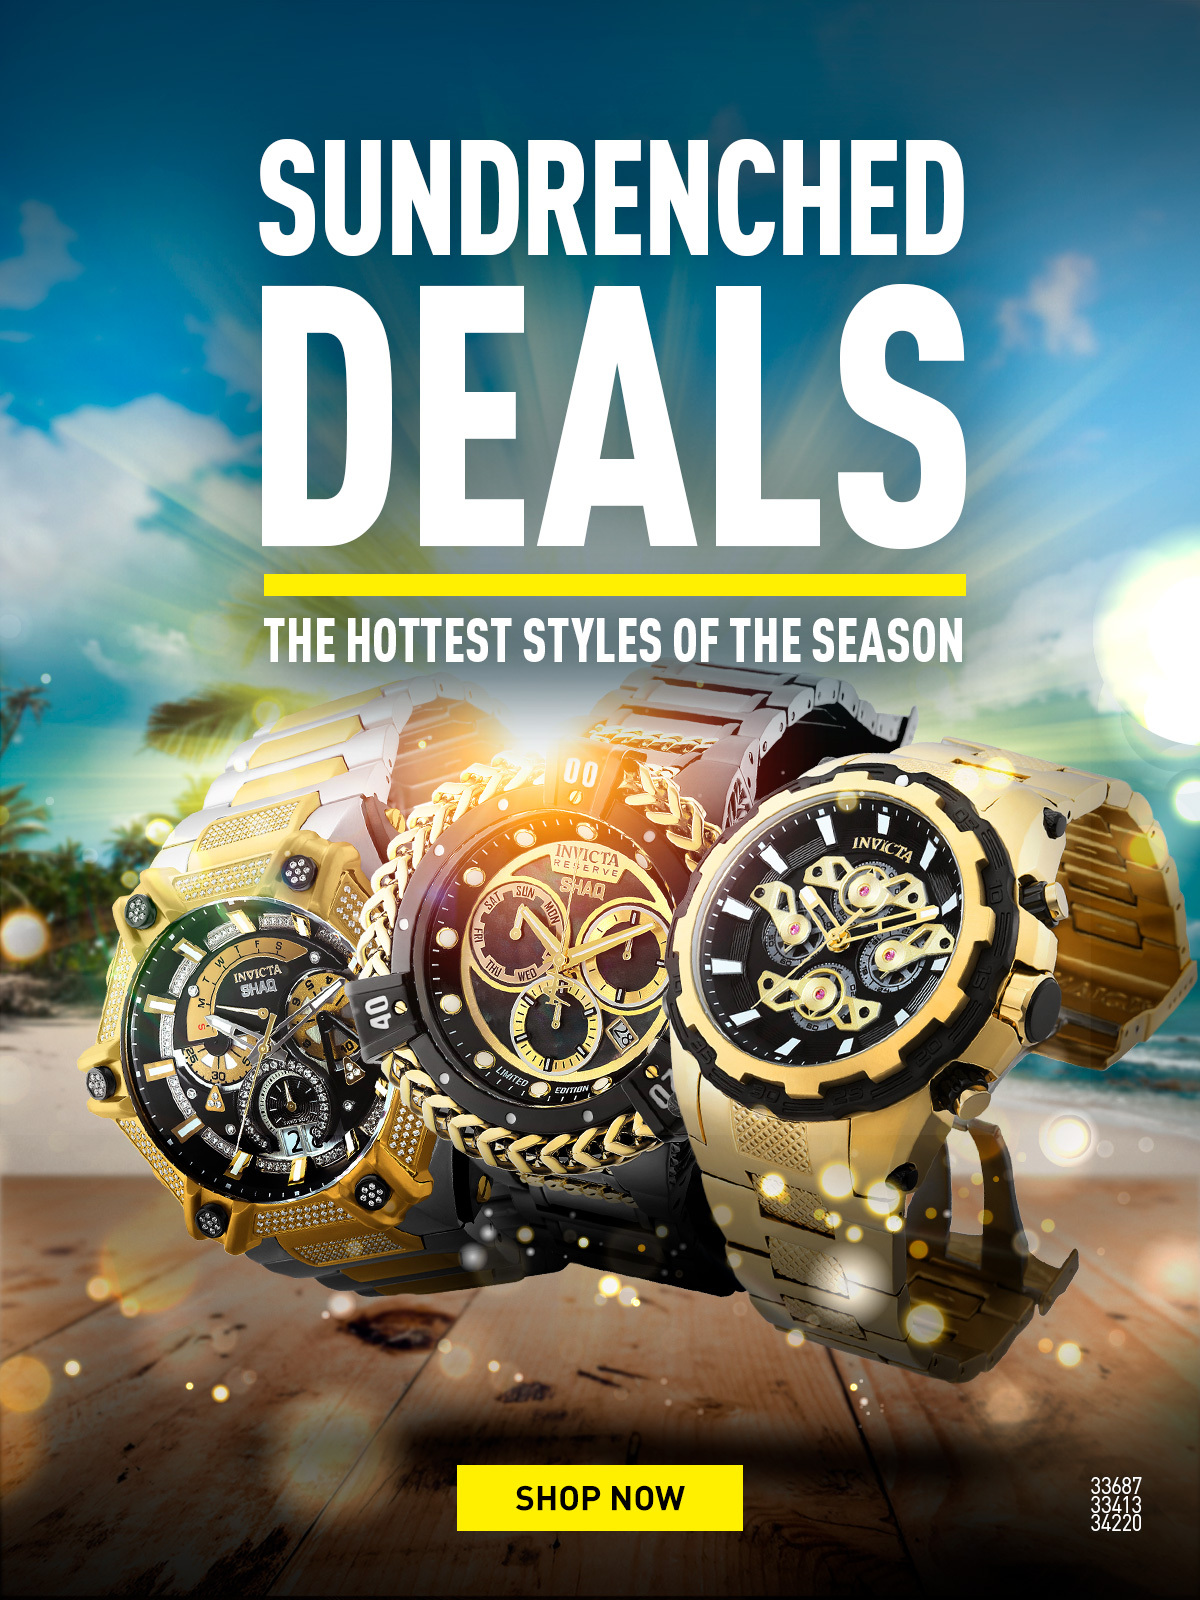 Sundrenched Deals. The Hottest Styles of the season